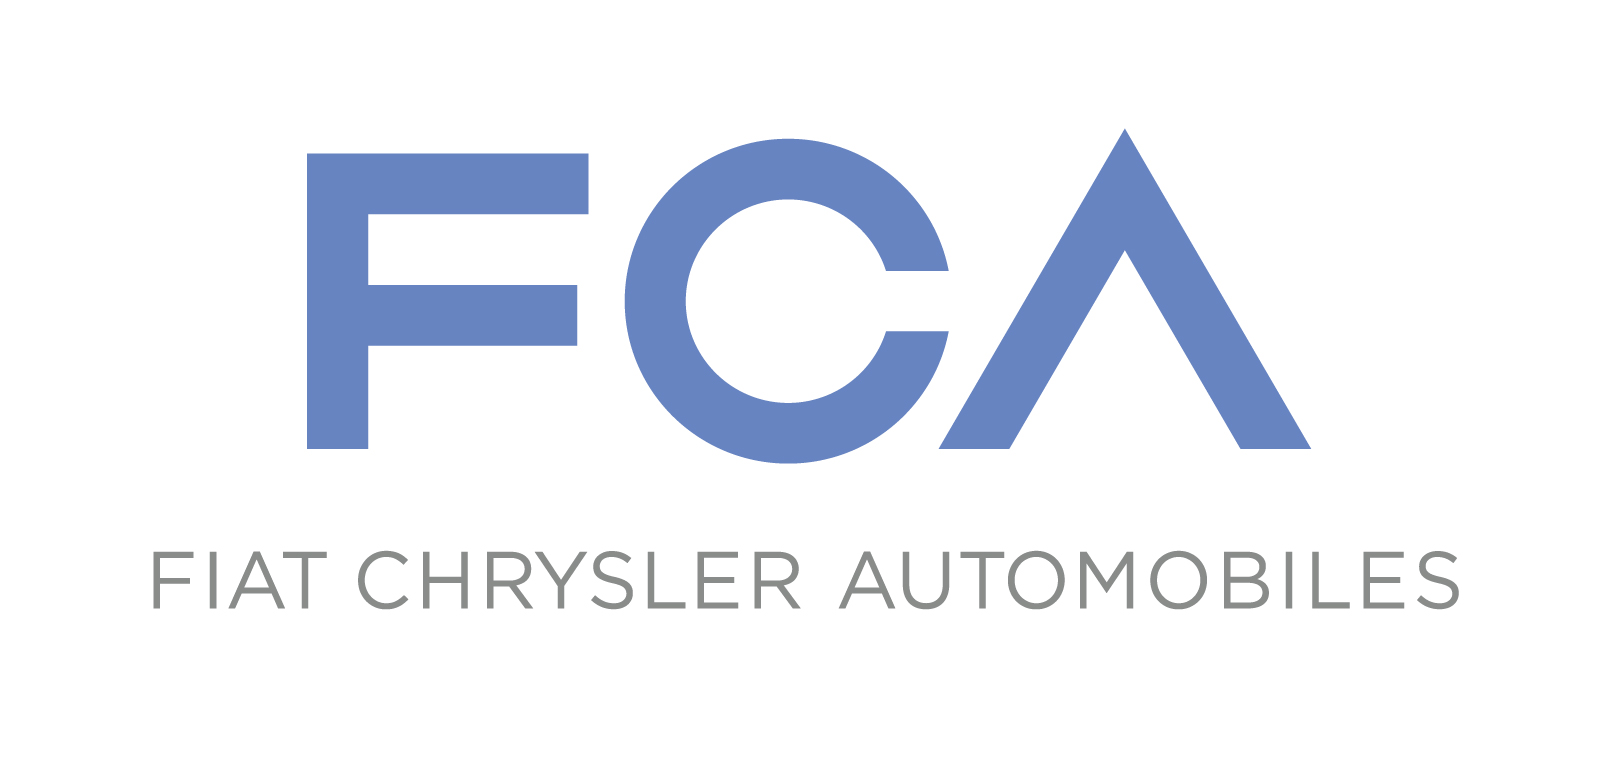 FCA LOGO Innovation Hub